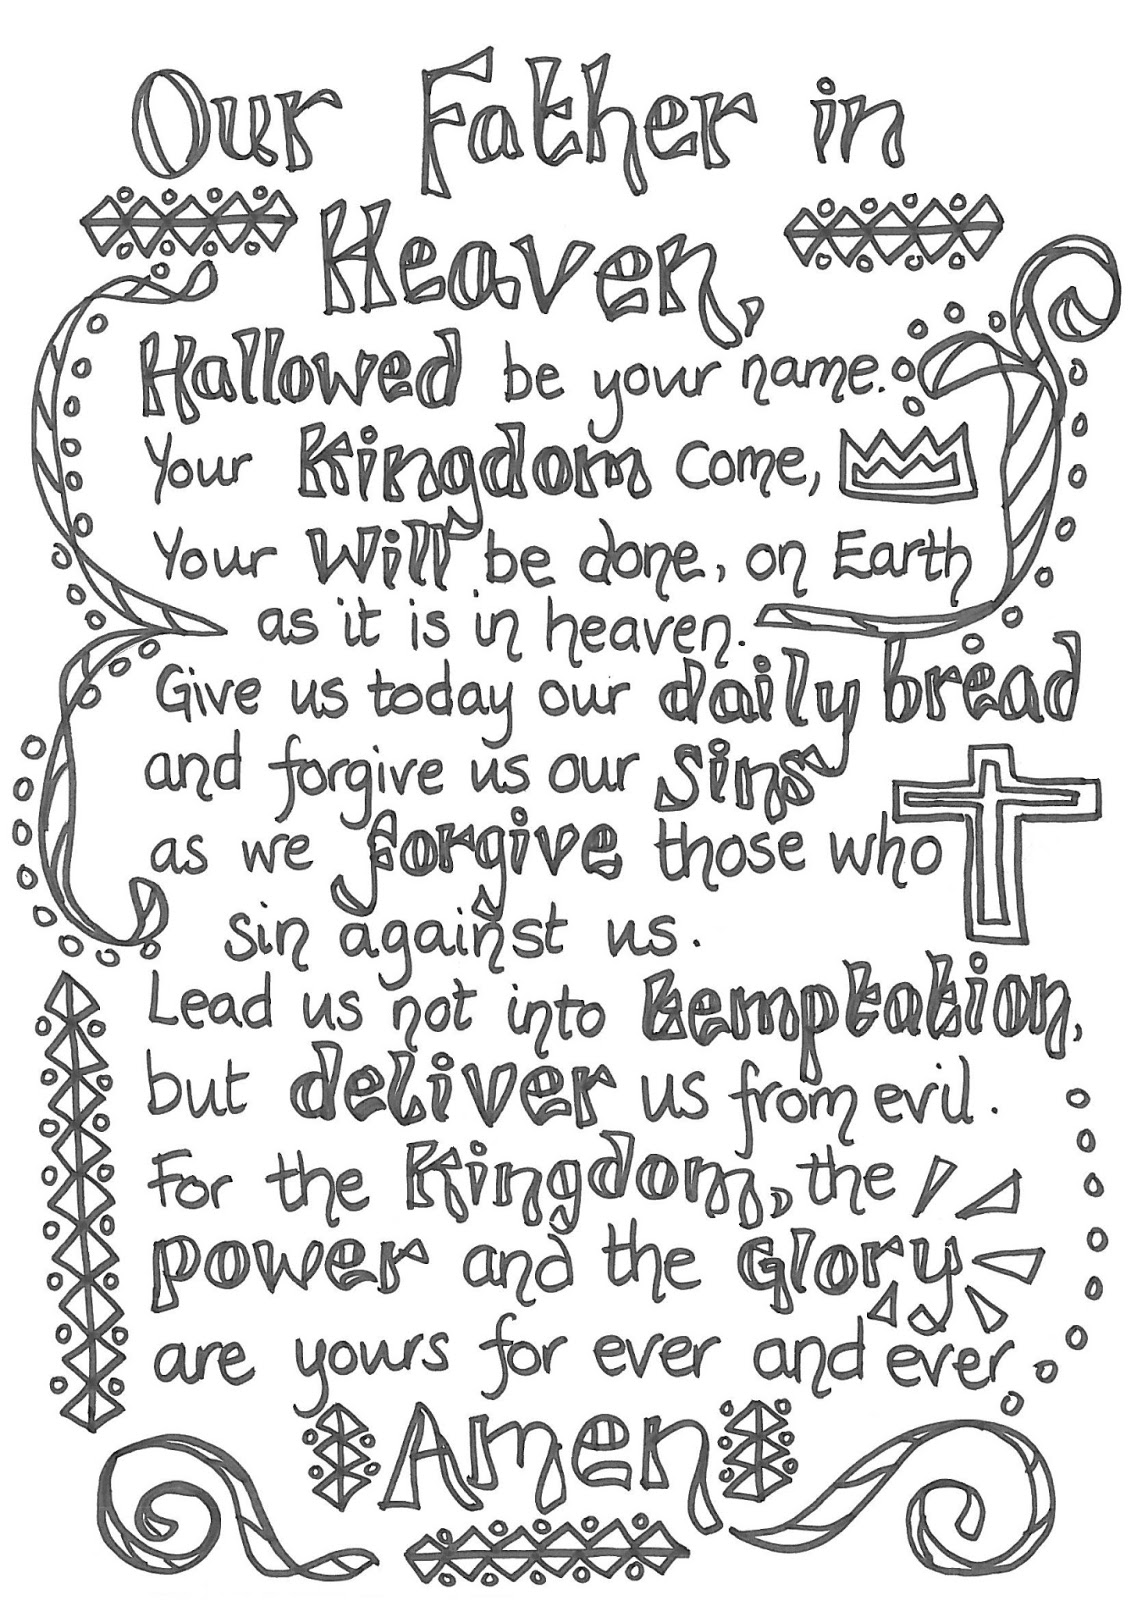 image about The Lord's Prayer Coloring Pages Printable called Flame: Inventive Childrens Ministry: Prayers towards color inside of!